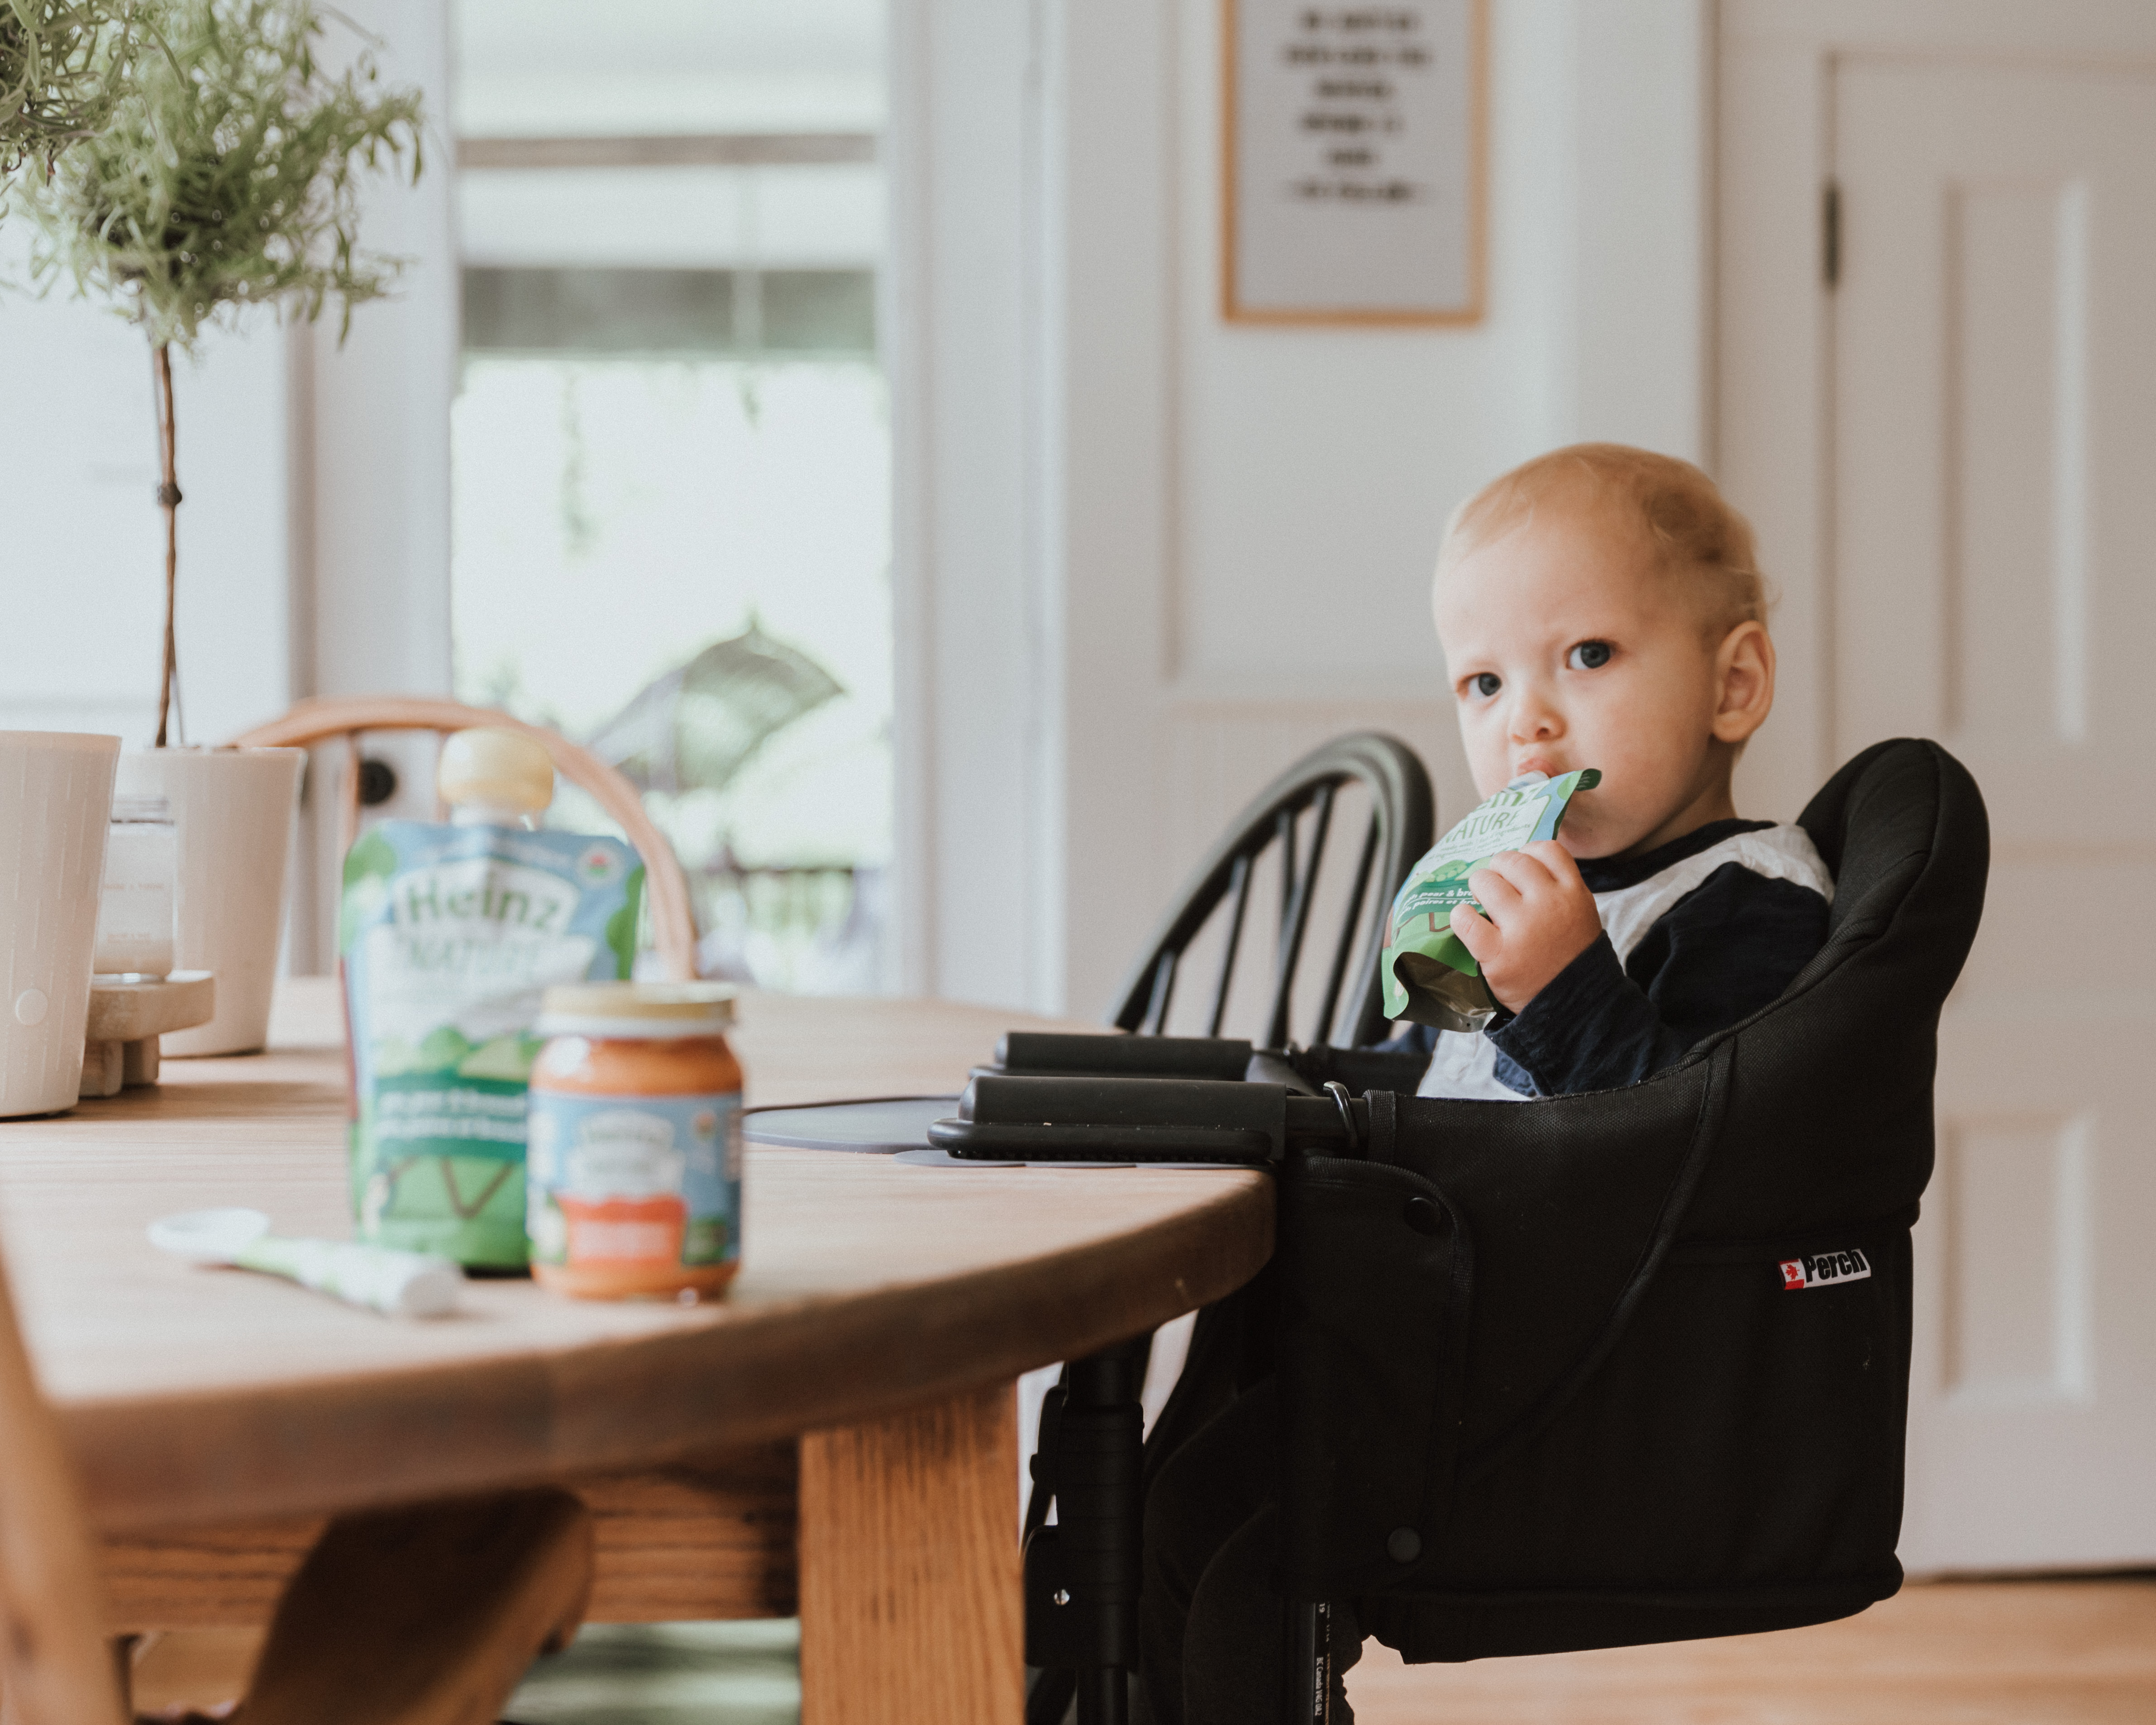 Baby in high-chair eating food from pouch